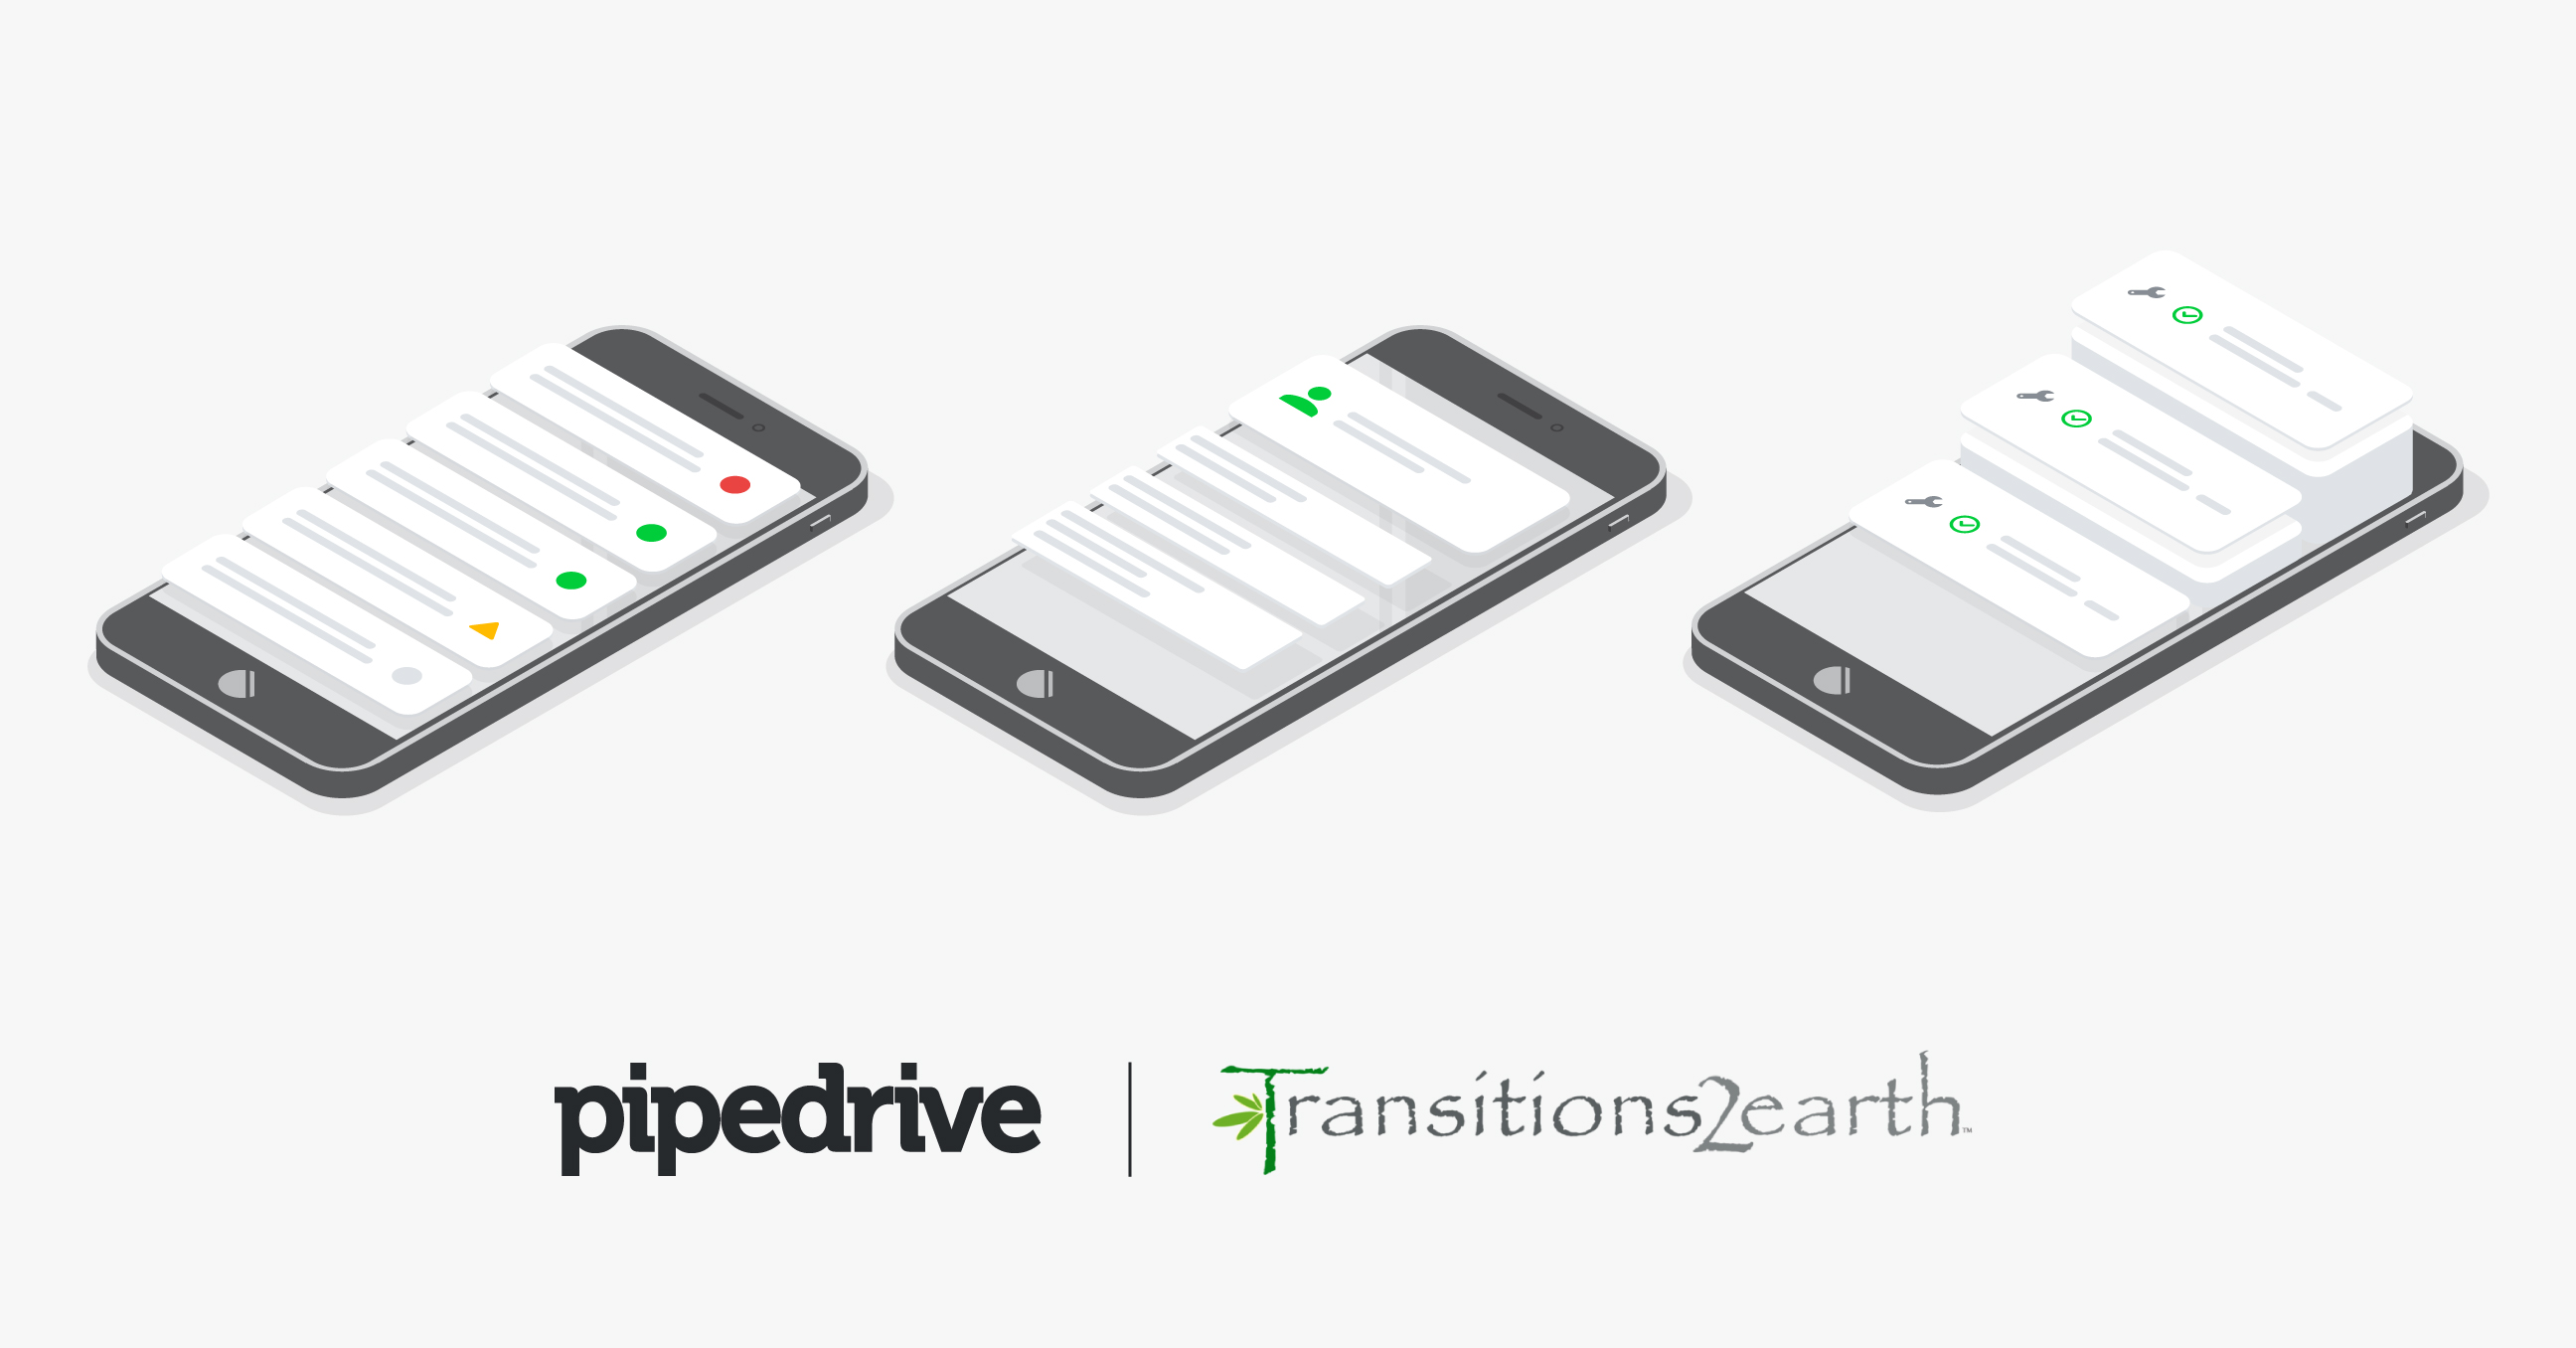 Transitions2earth Pipedrive Mobile use case